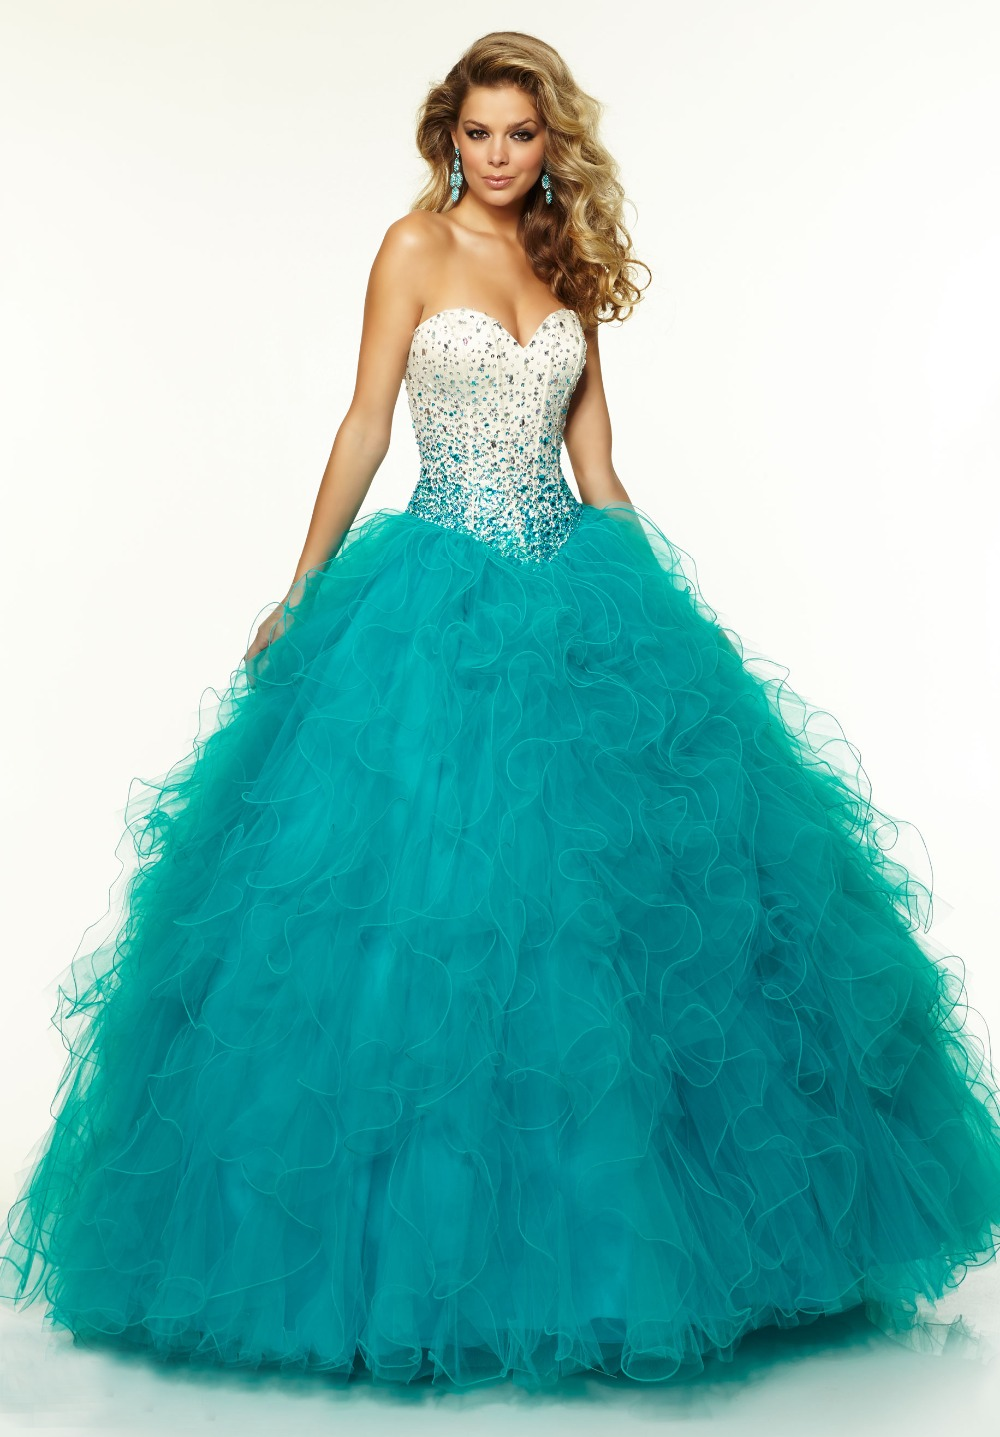 Magnificent Pretty Dresses For Wedding Gift - All Wedding Dresses ...